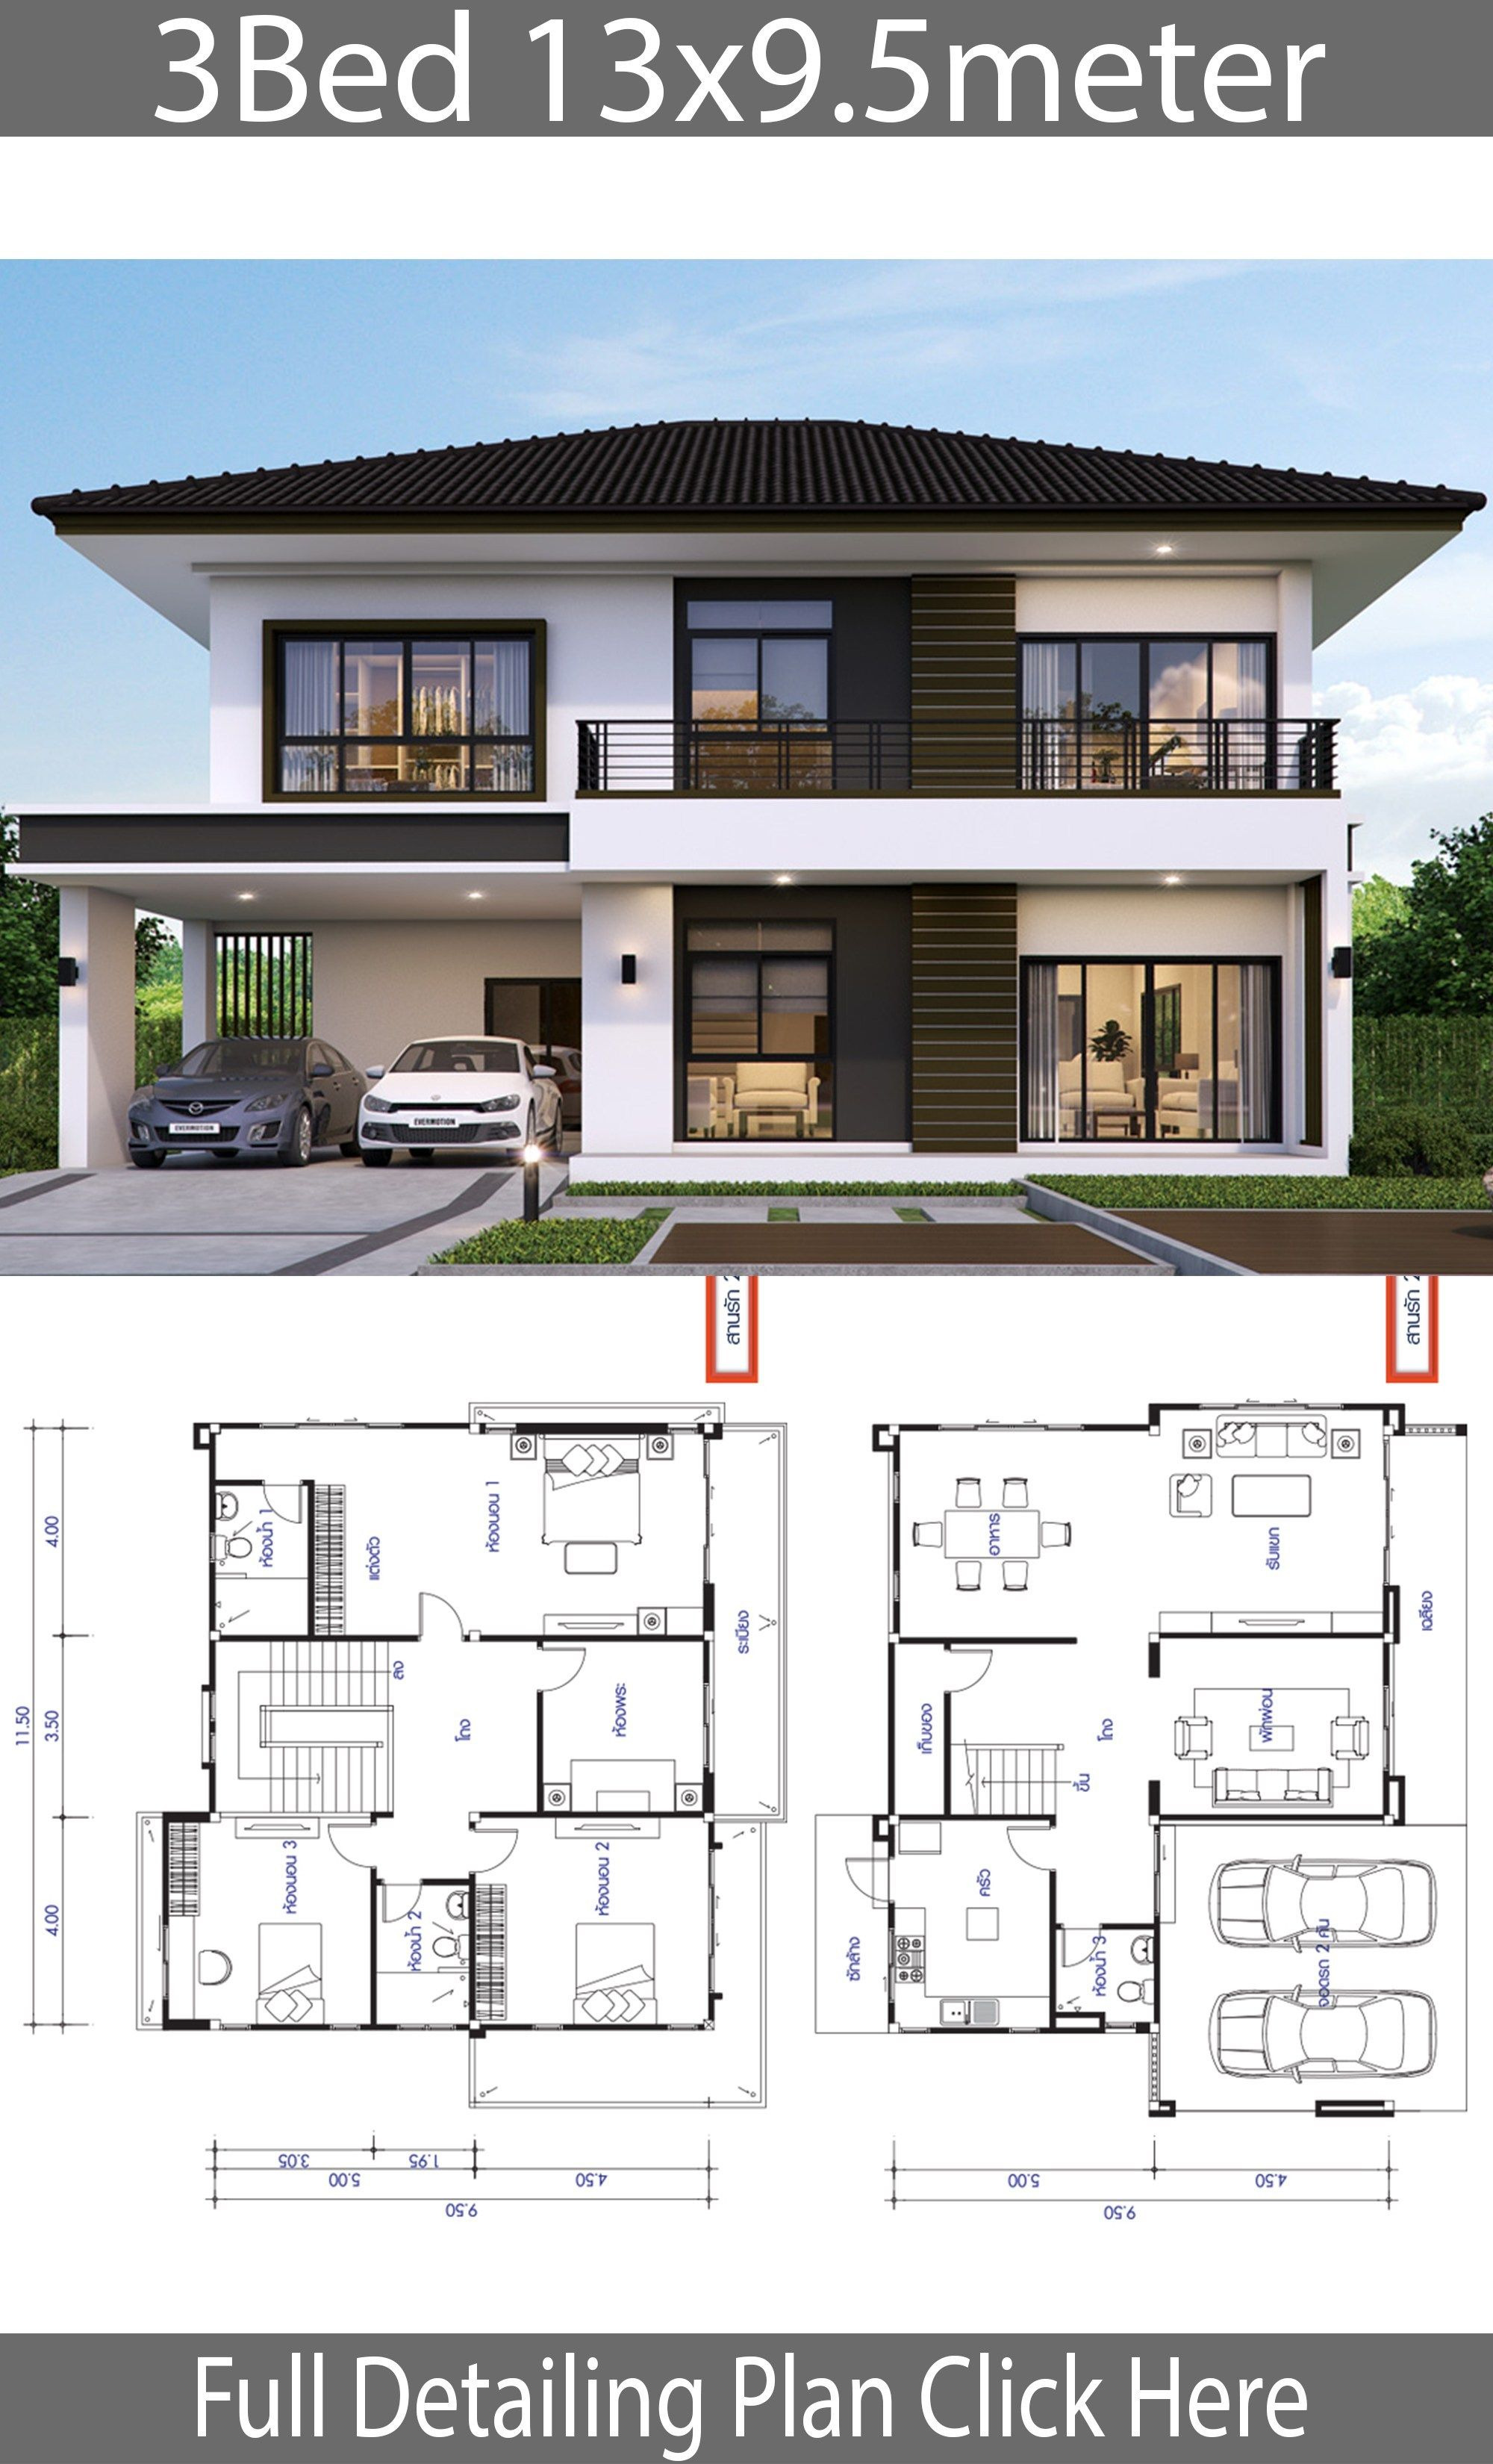 Custom House Plans with Photos Fresh House Design Plan 13x9 5m with 3 Bedrooms